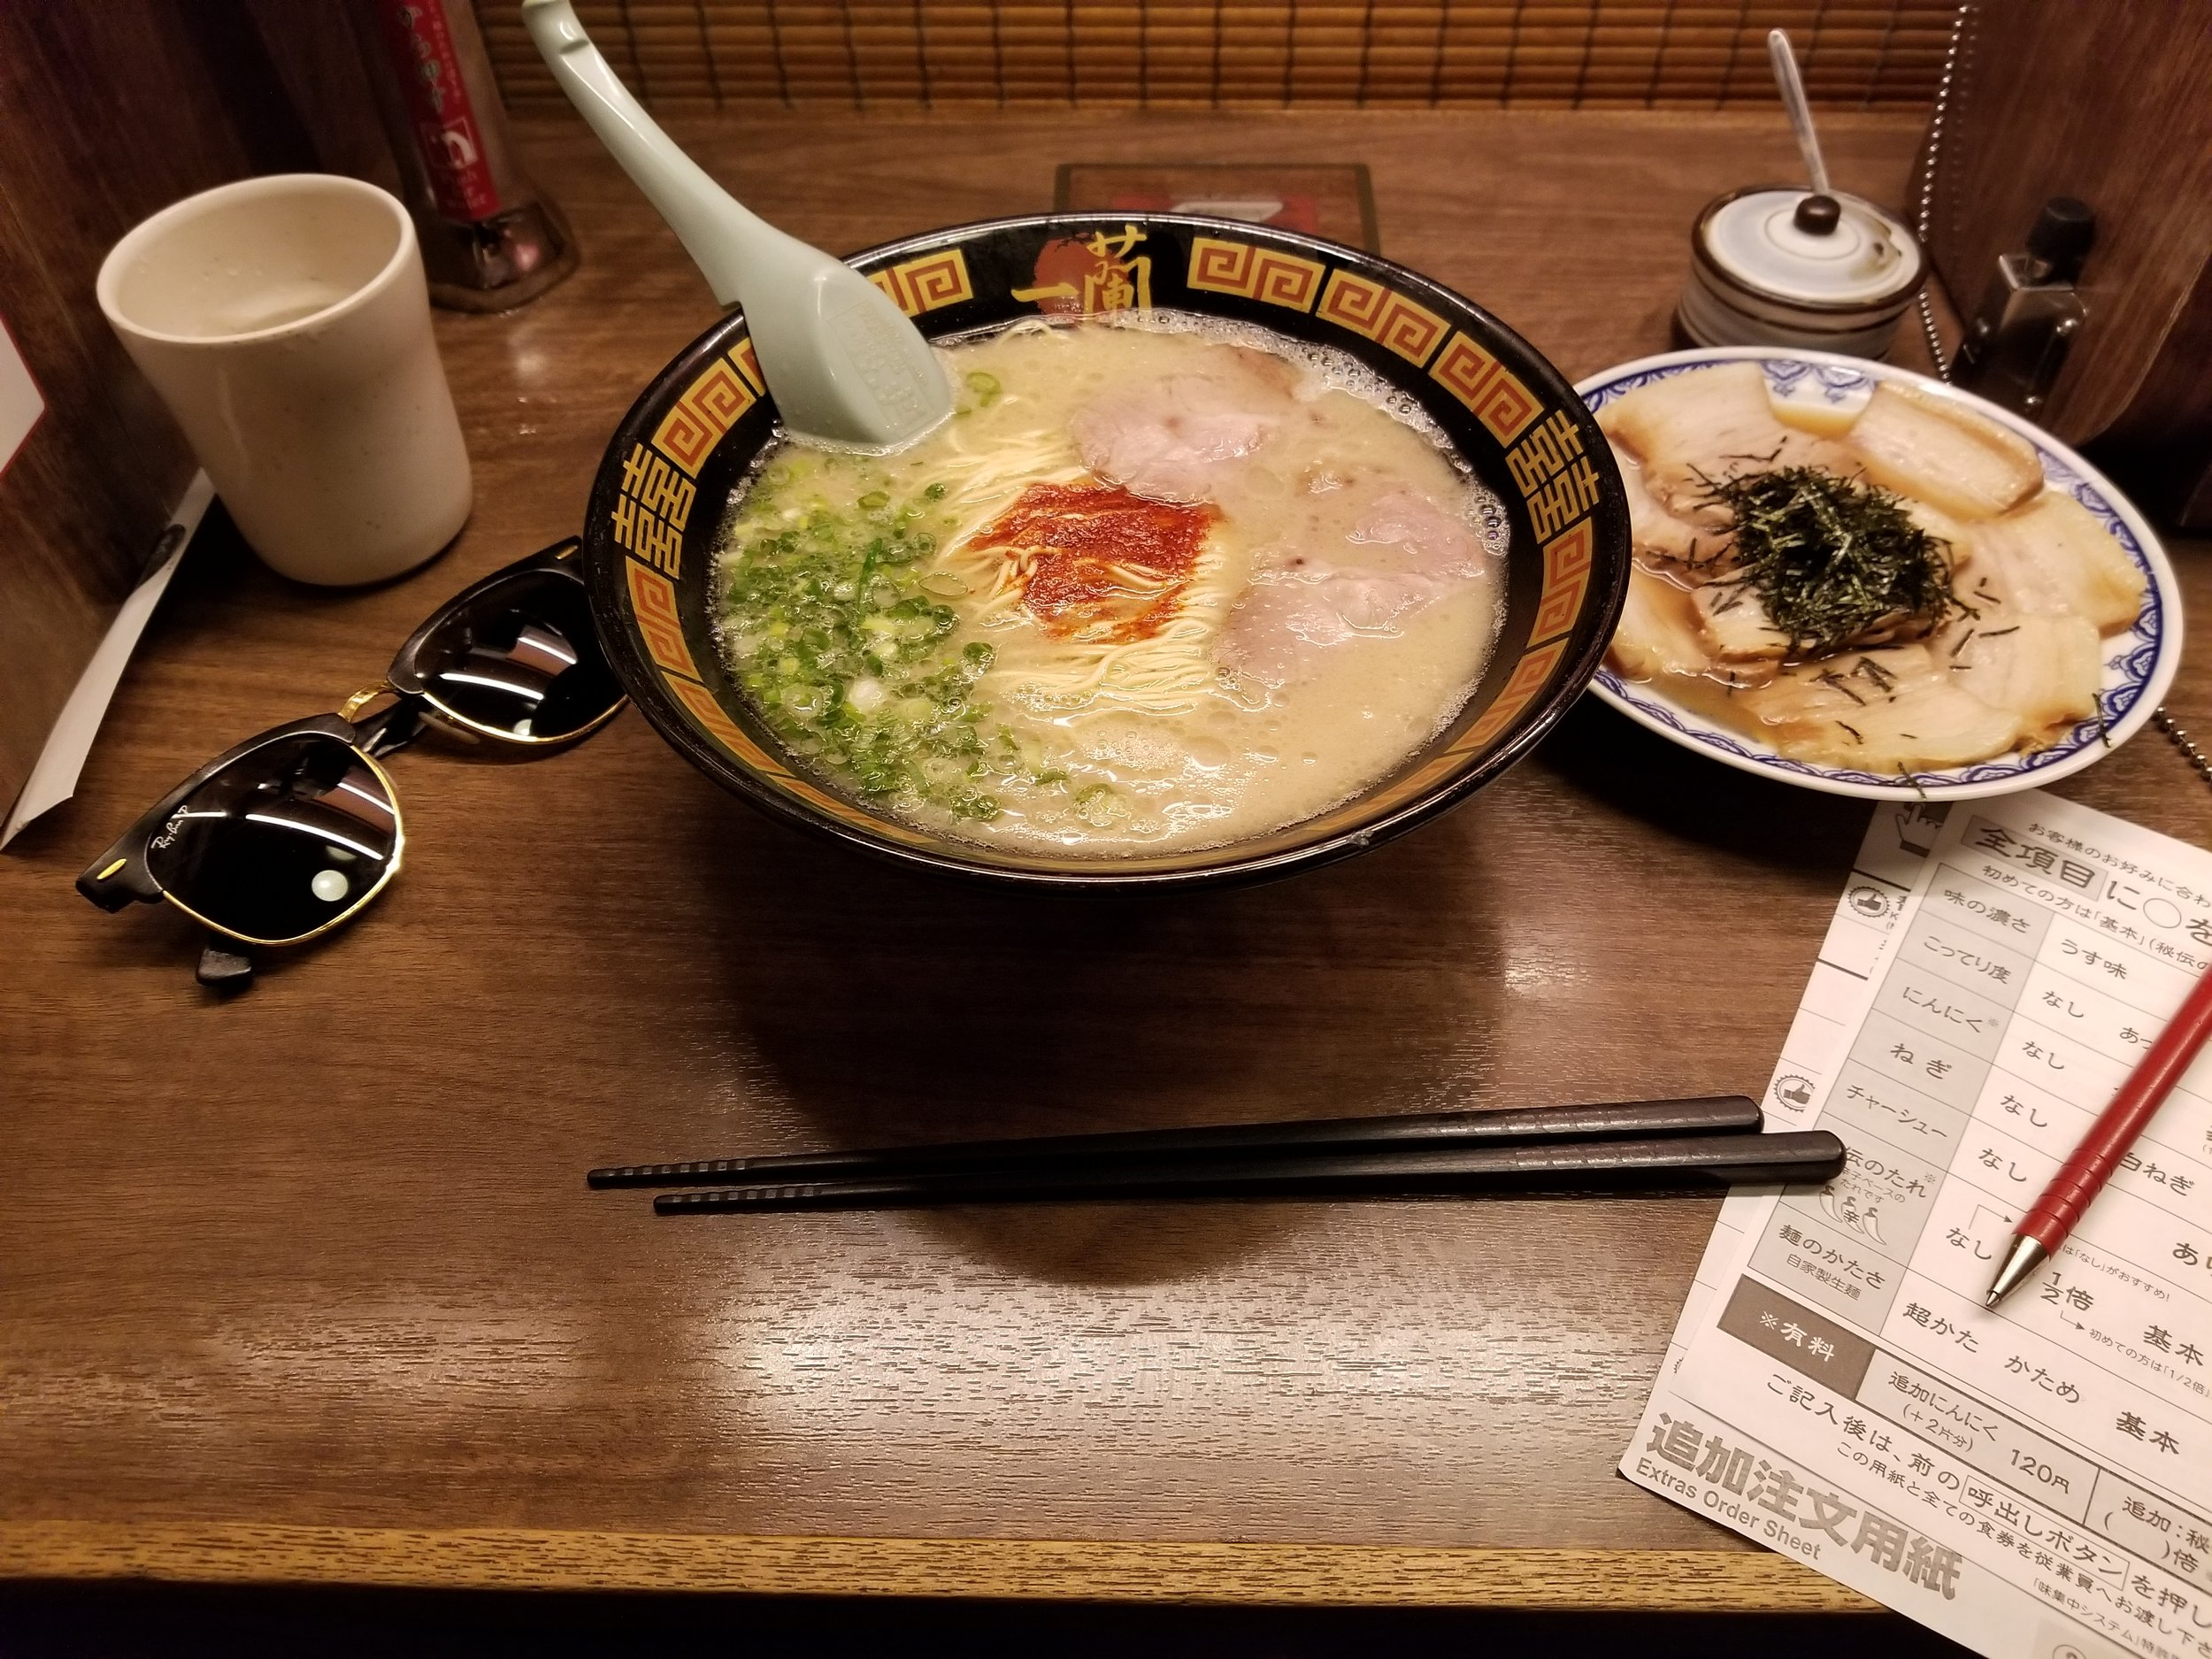 Tomo introduced me to a place called Ichiran ramen, and it is hands down the best I've ever had. This was my second visit of the day. Post drinking food in Japan may as well be called soul food.